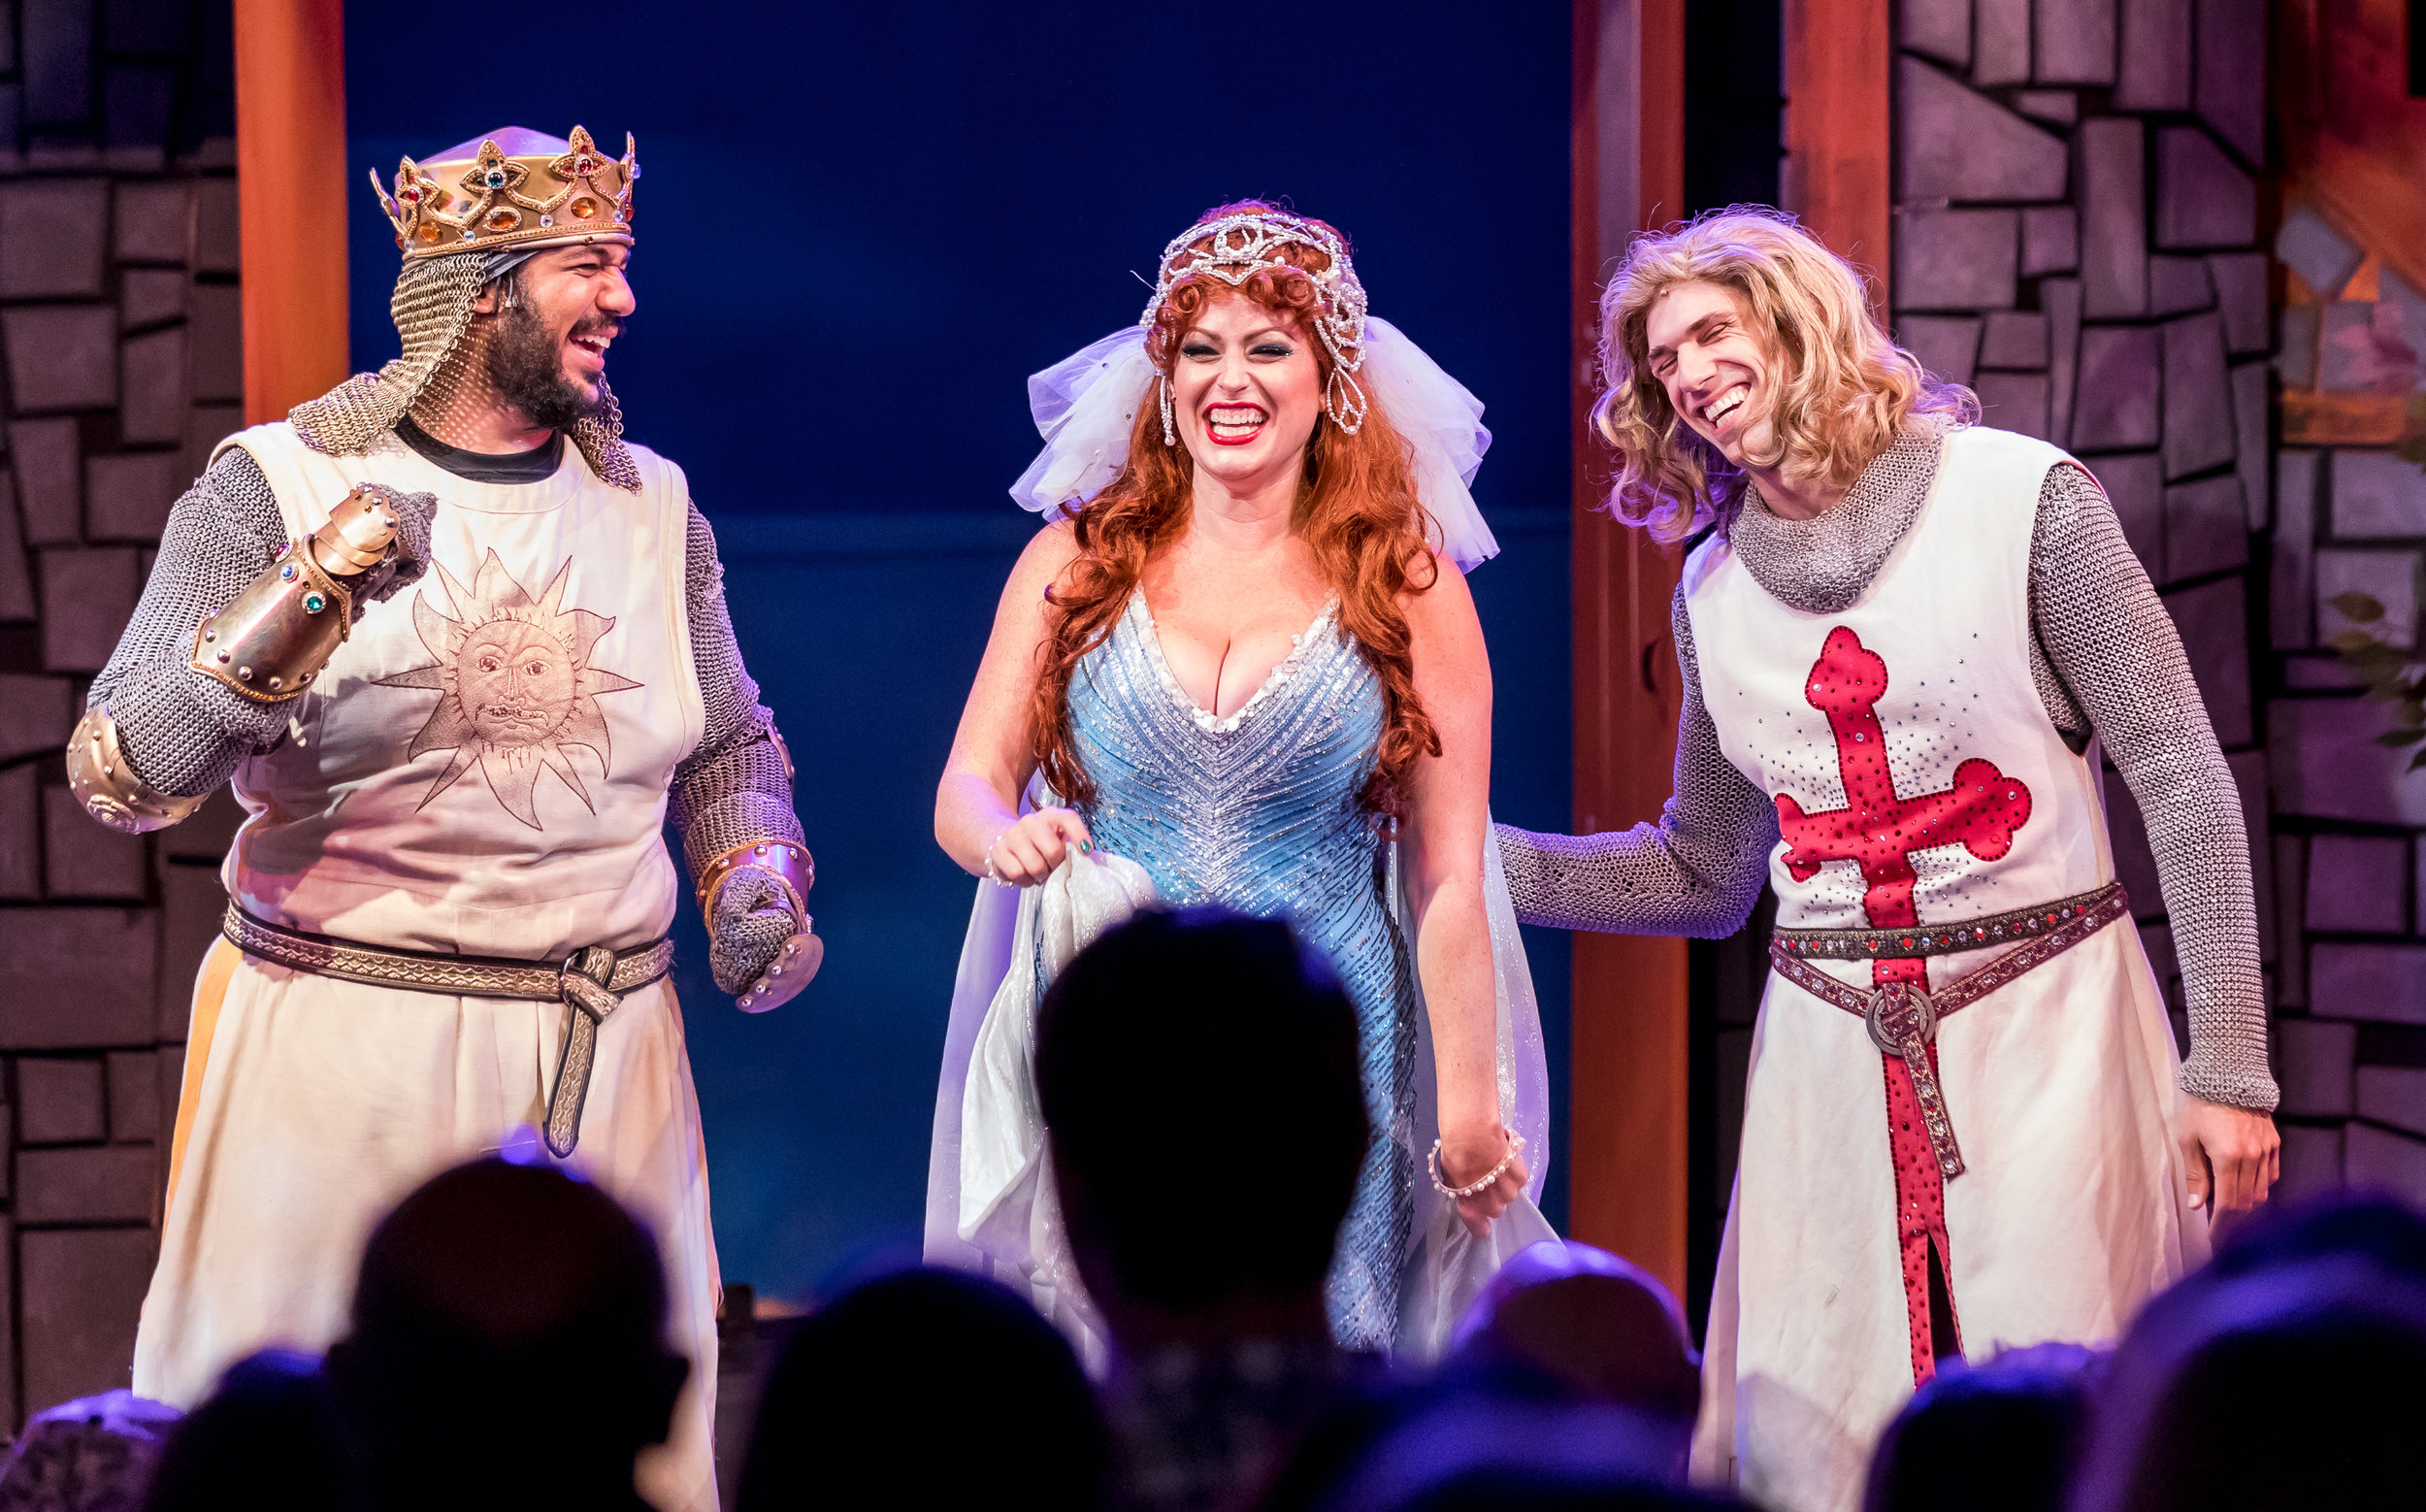 SpamalotActlI_Selects_HiRes_465A1498.jpg